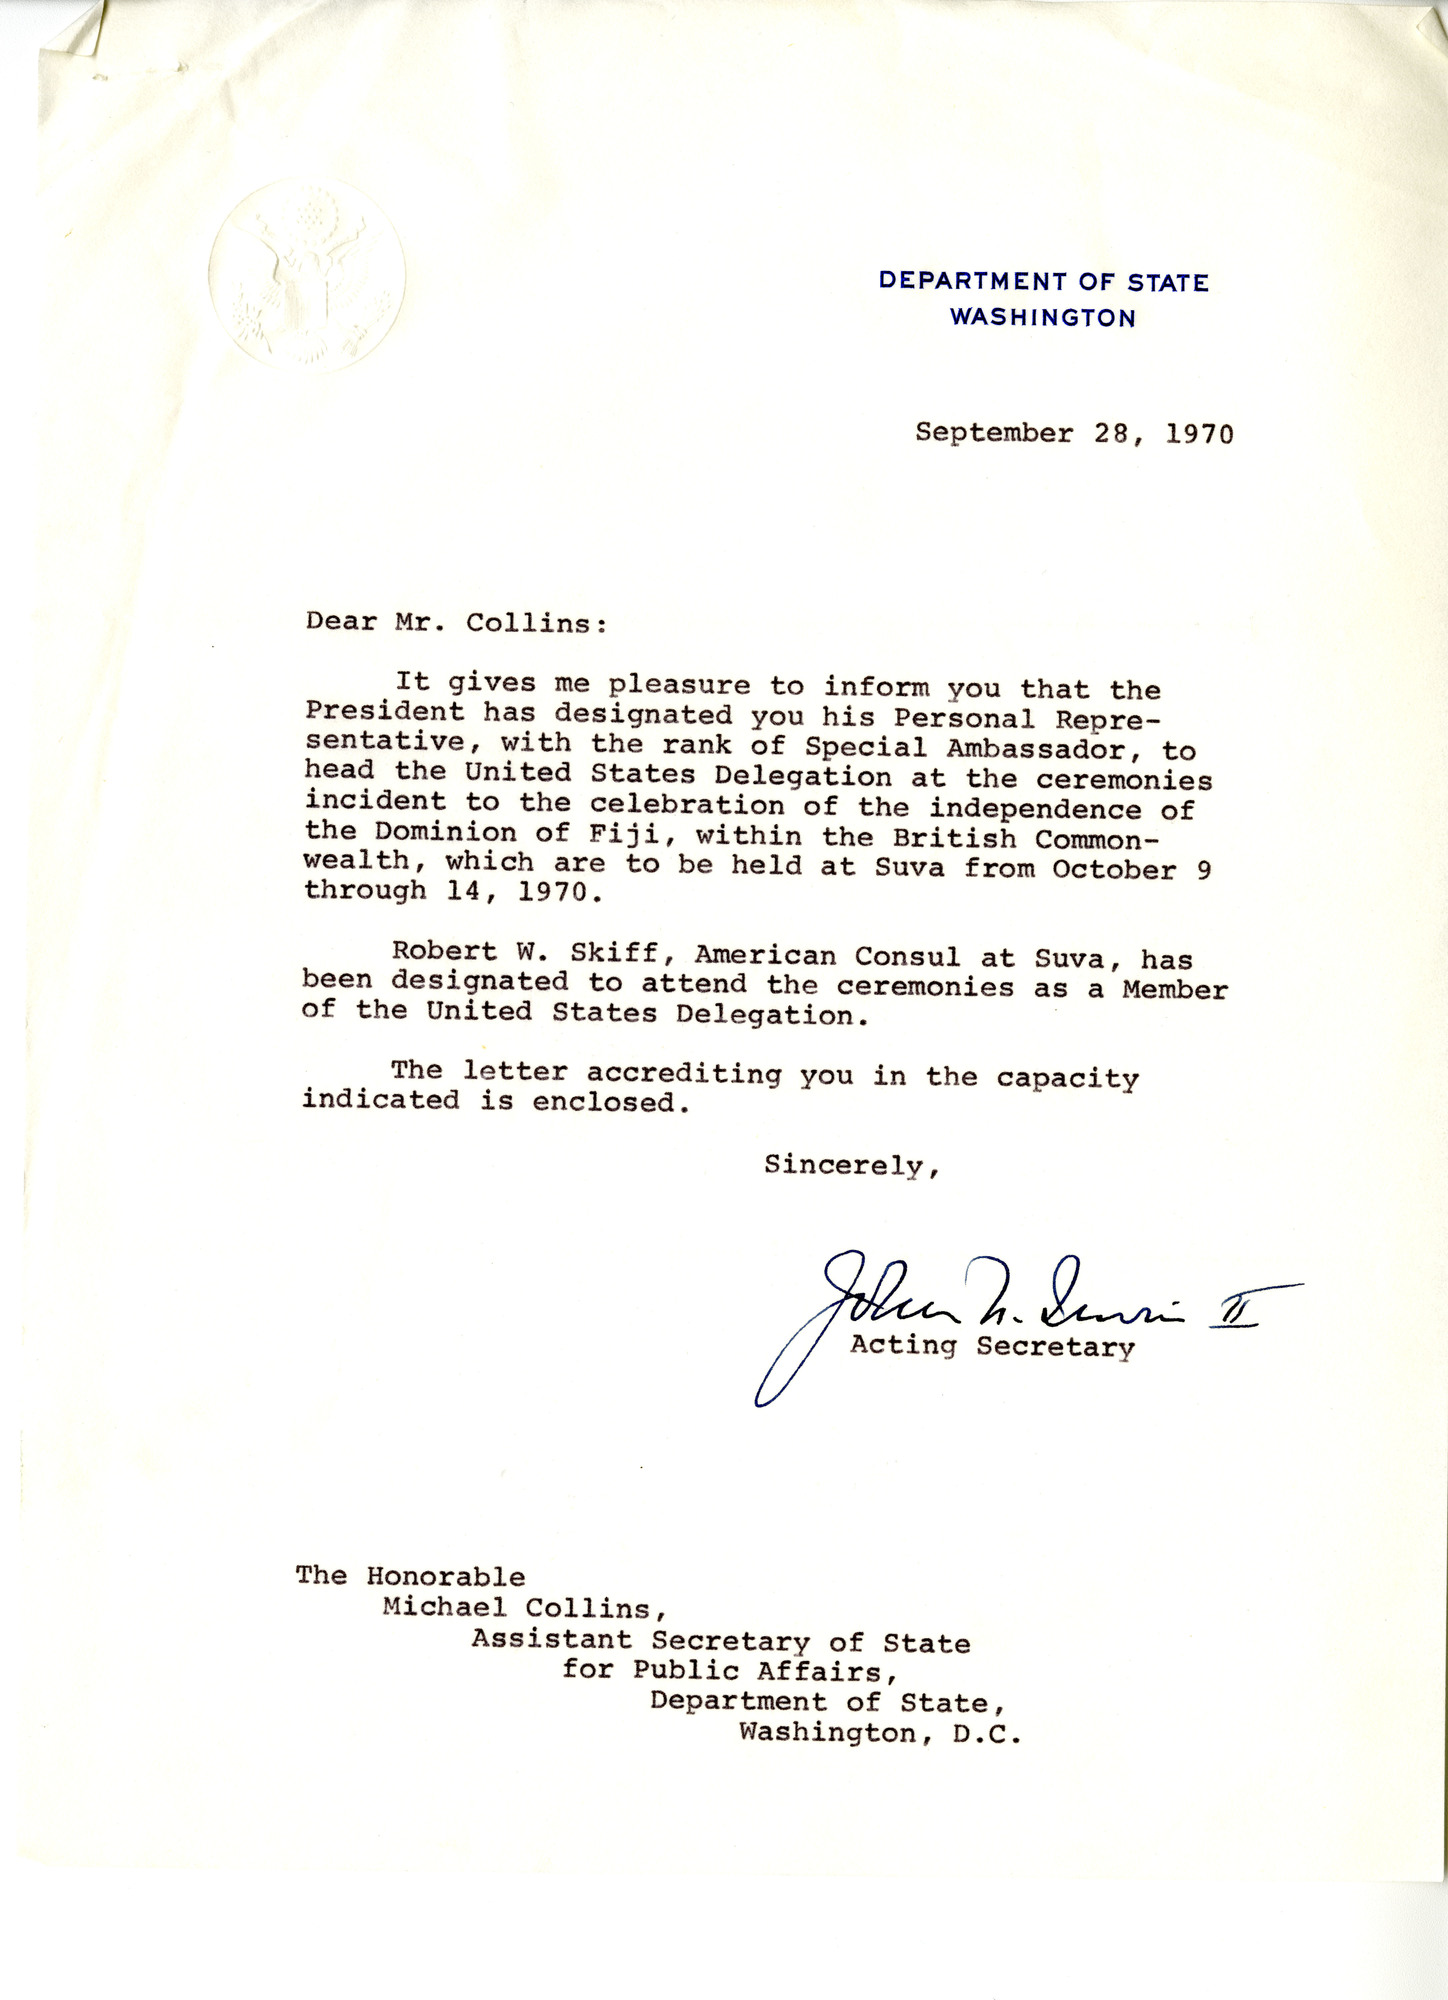 http://spec.lib.vt.edu/pickup/Omeka_upload/Ms1989-029_B18_F1_MichaelCollins_Letter_1970_0928a.jpg